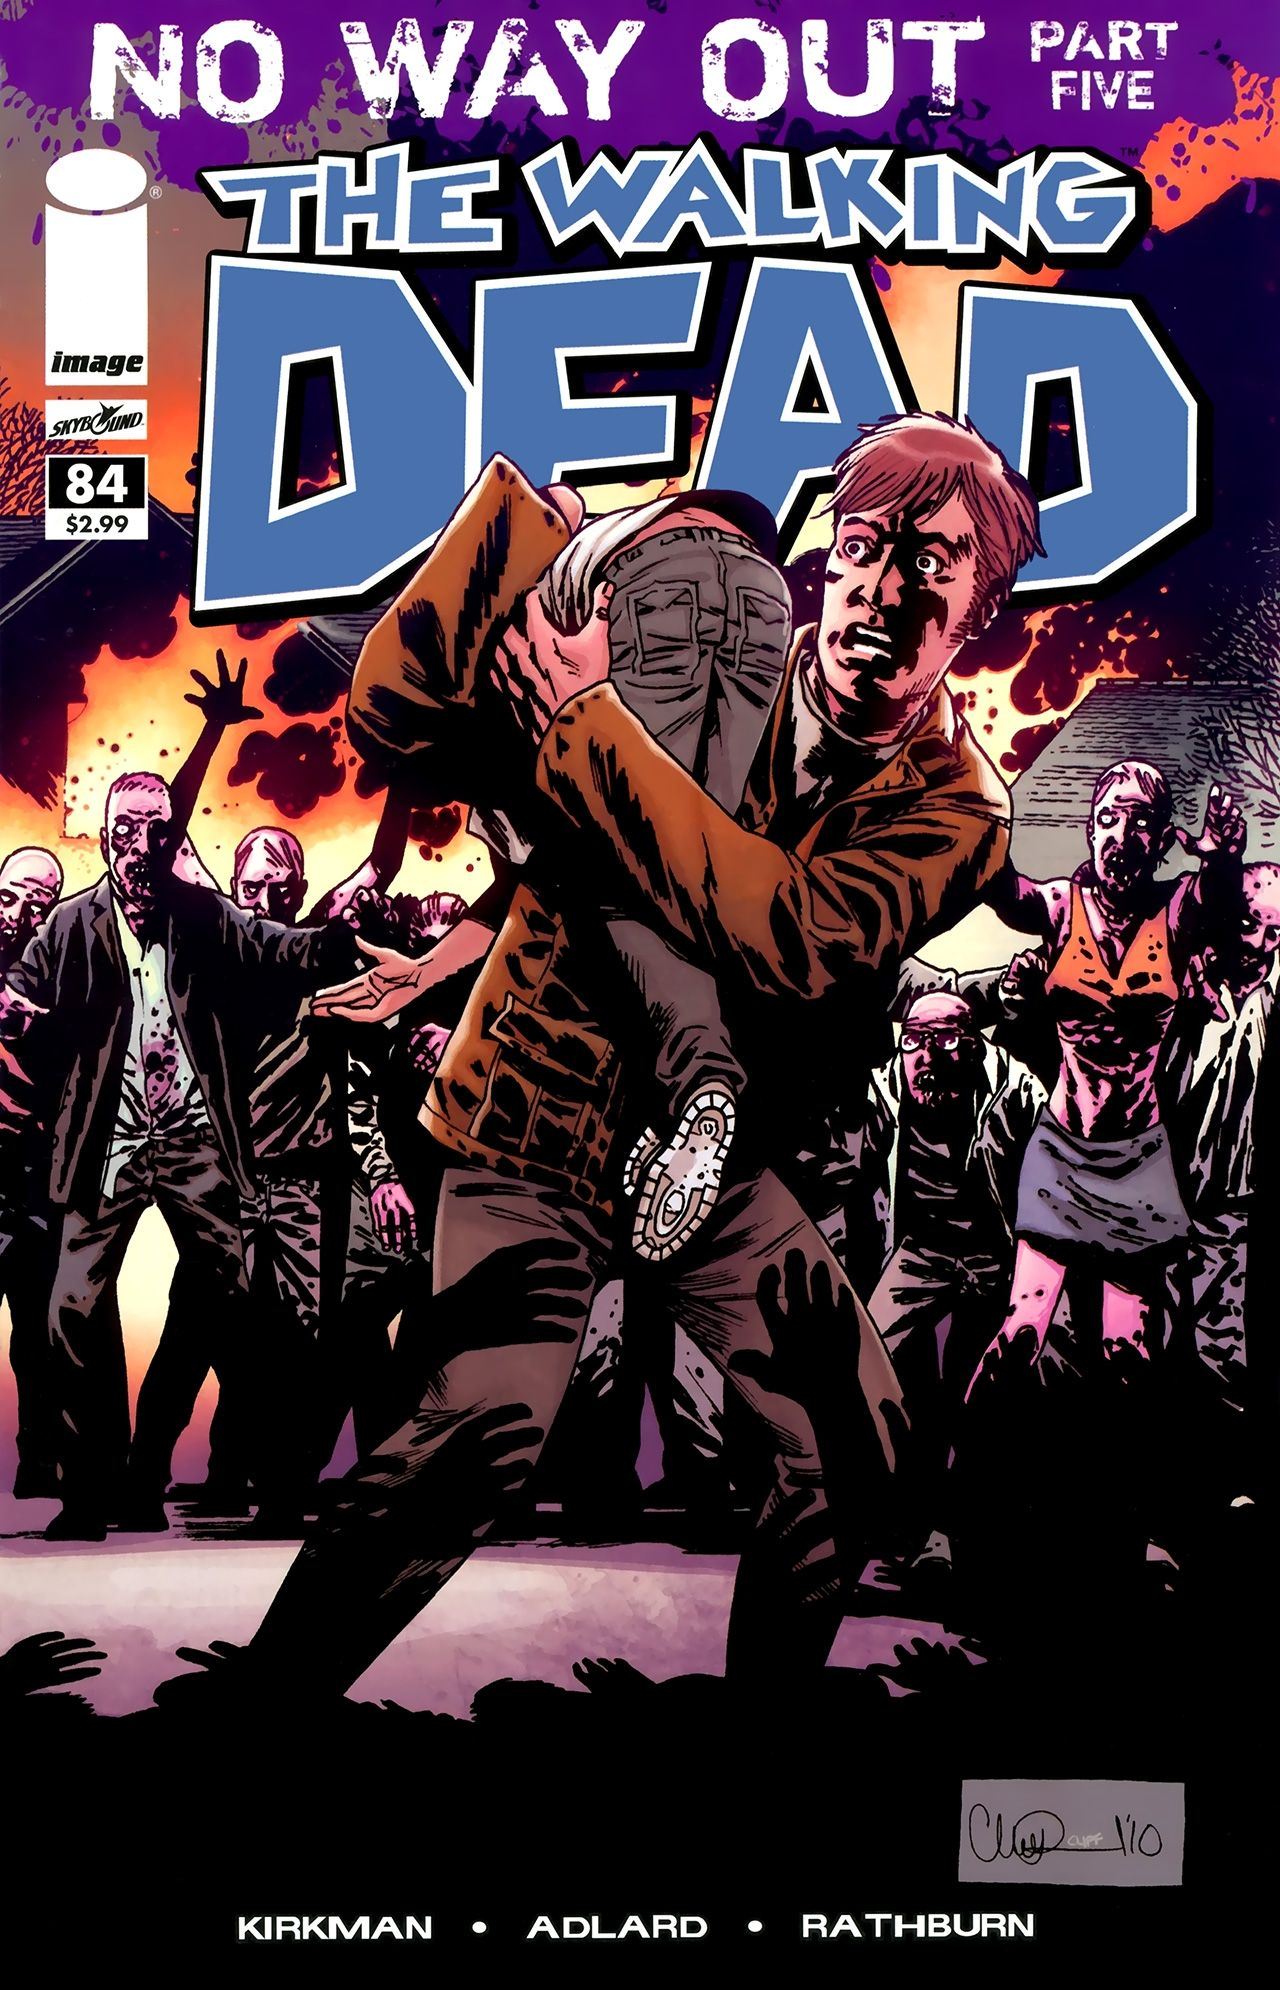 The Walking Dead Comic 84 Walking Dead Comics Walking Dead Comic Book Image Comics